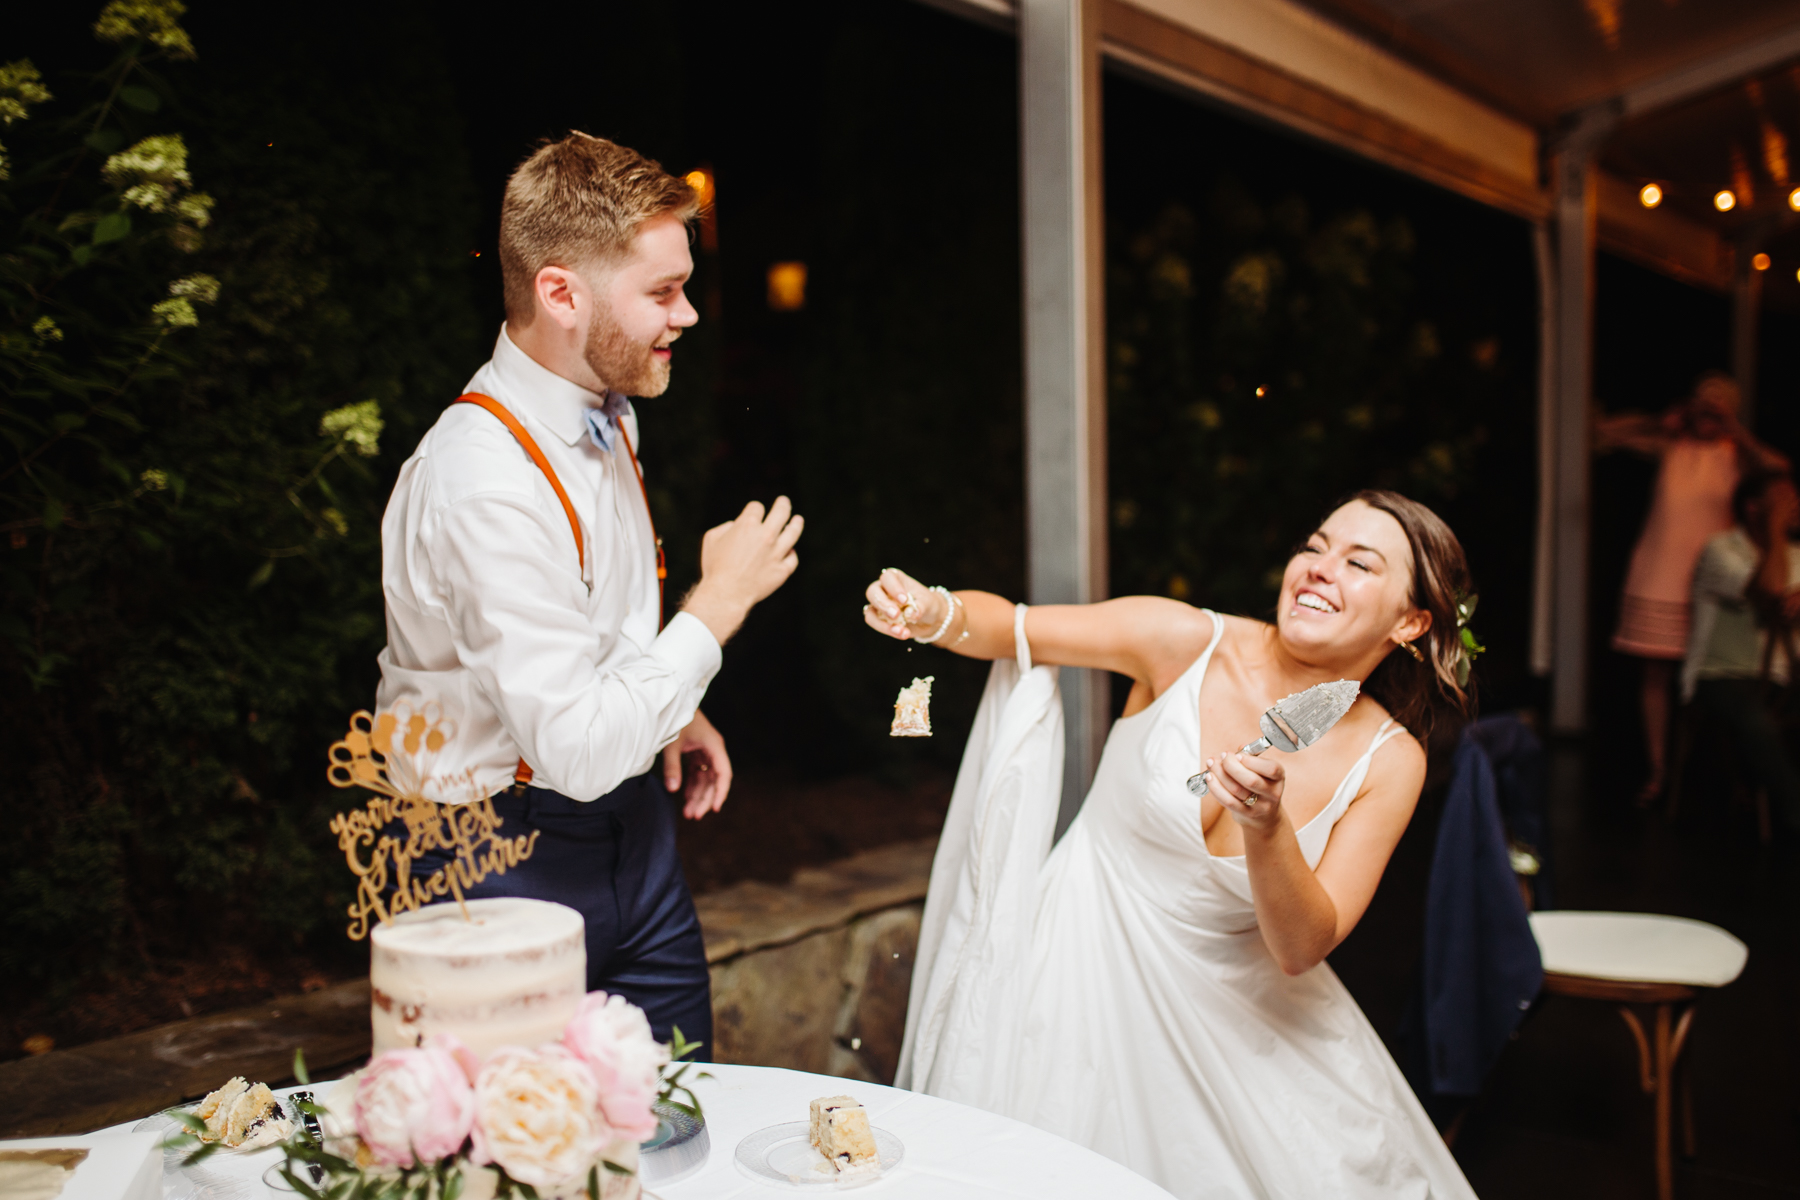 cutting the cake during a reception of a Sunny summer wedding at Dara's Garden in Knoxville, Tennessee